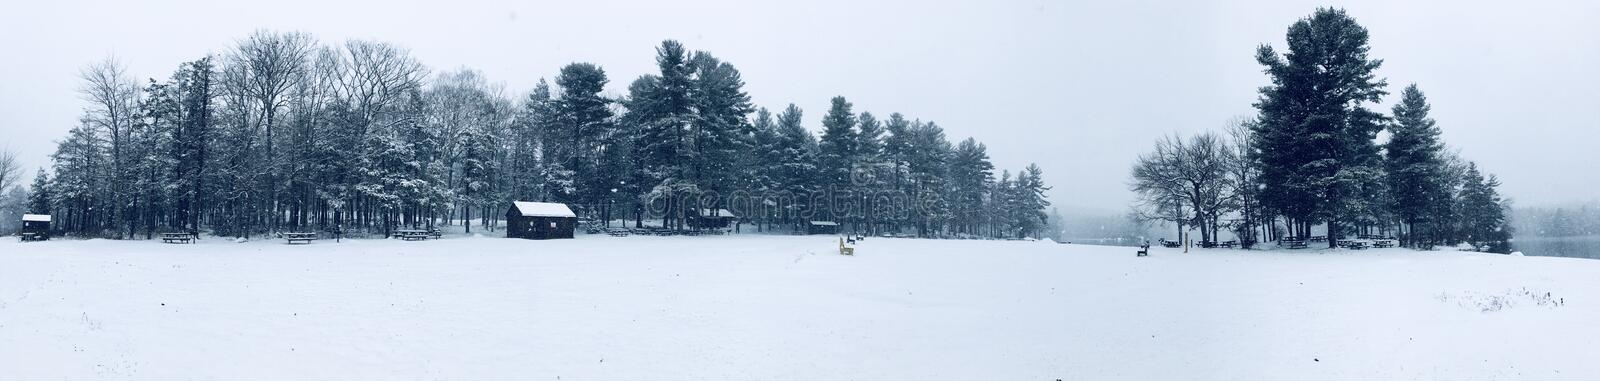 Burr Pond state park panorama winter view stock photography